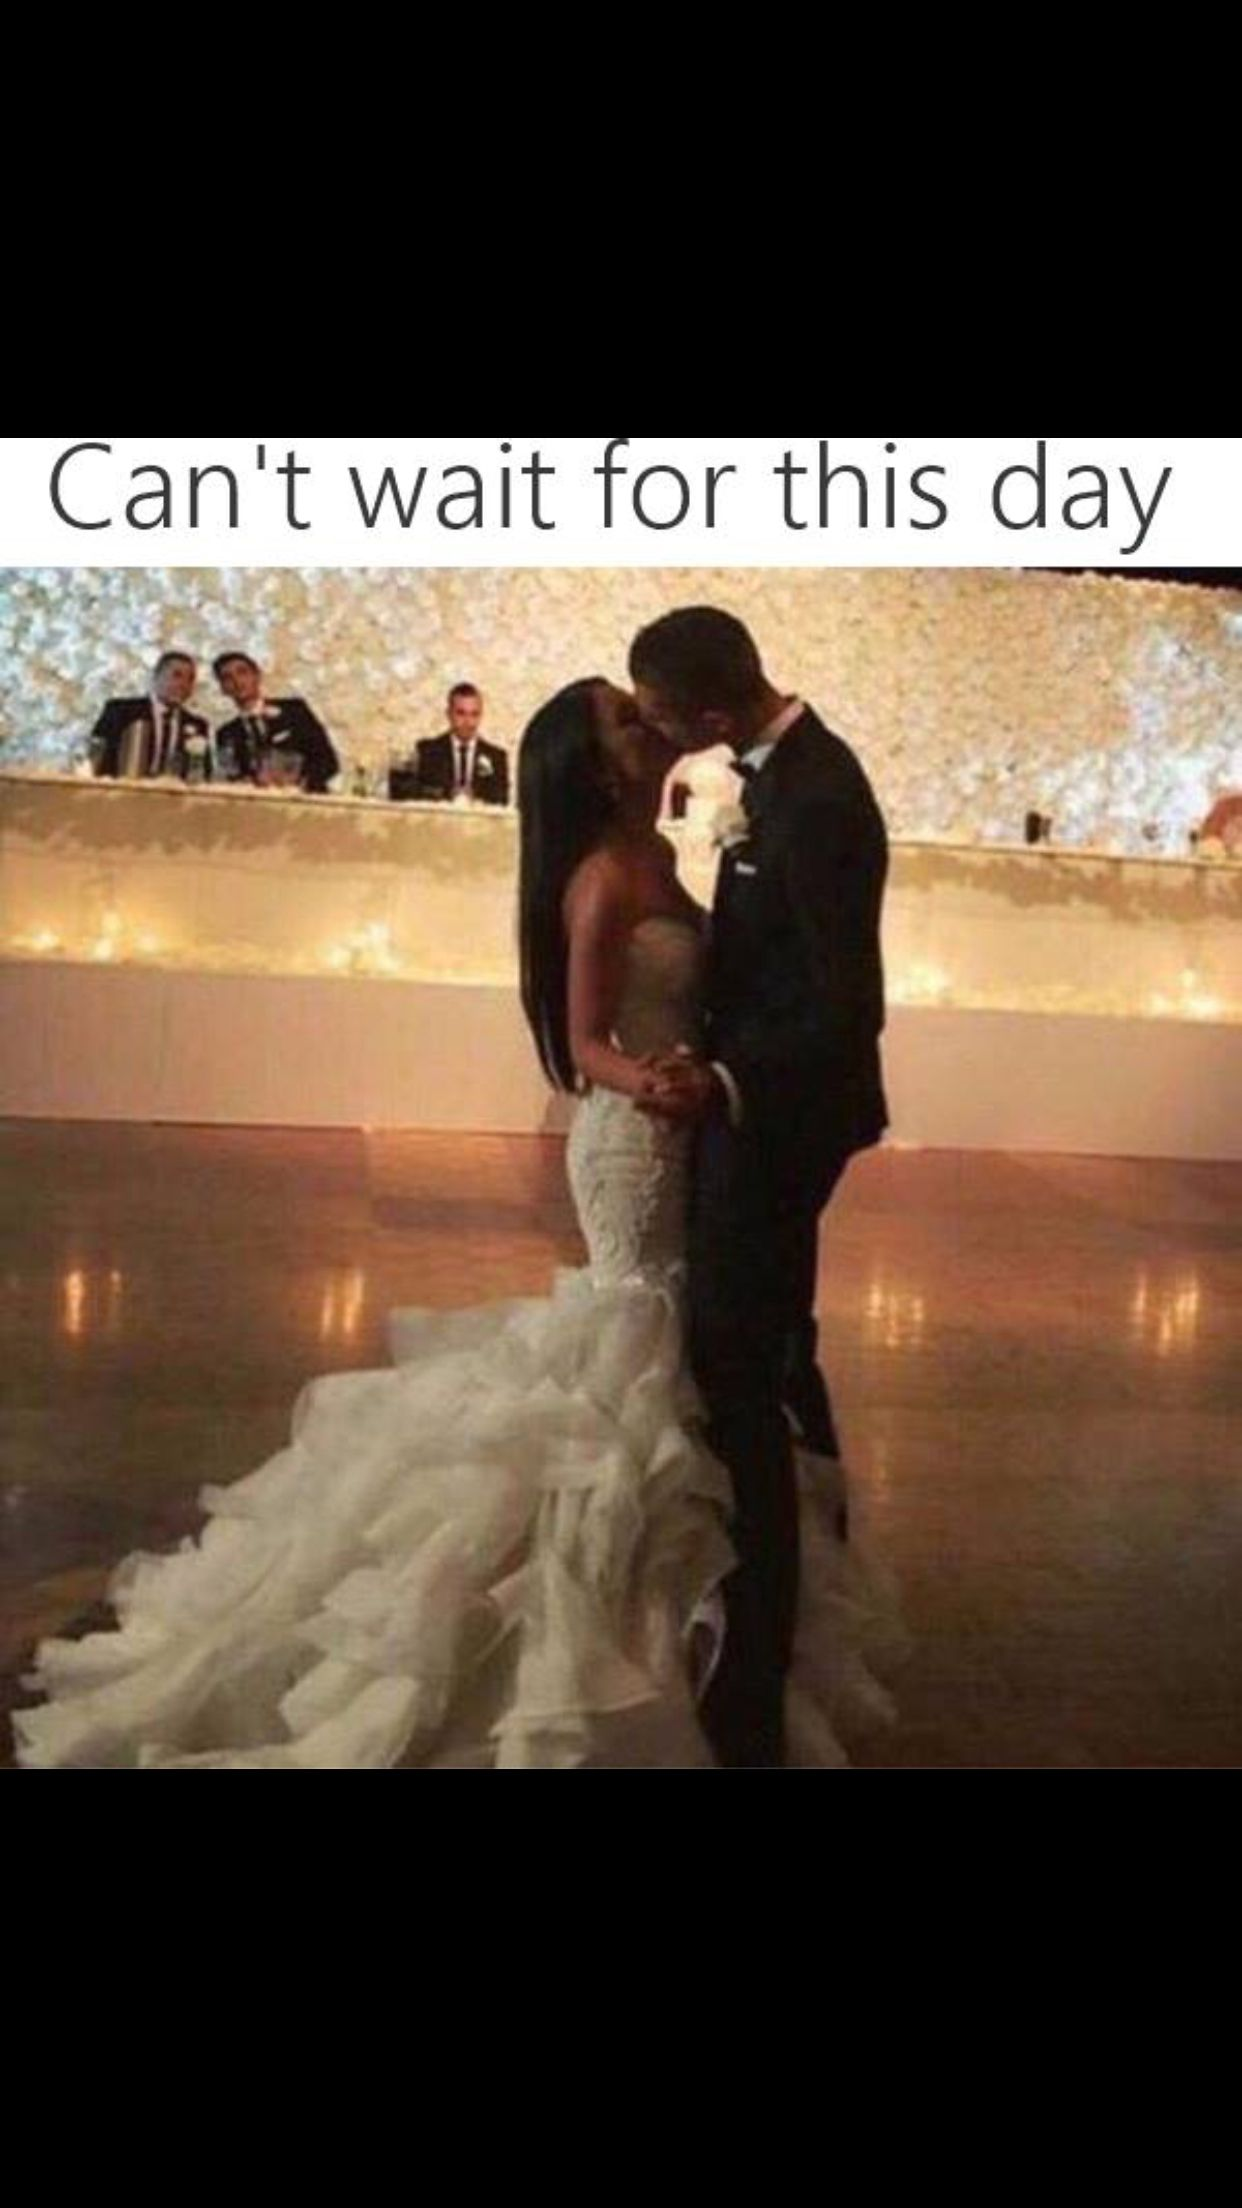 The first dance will be everything!